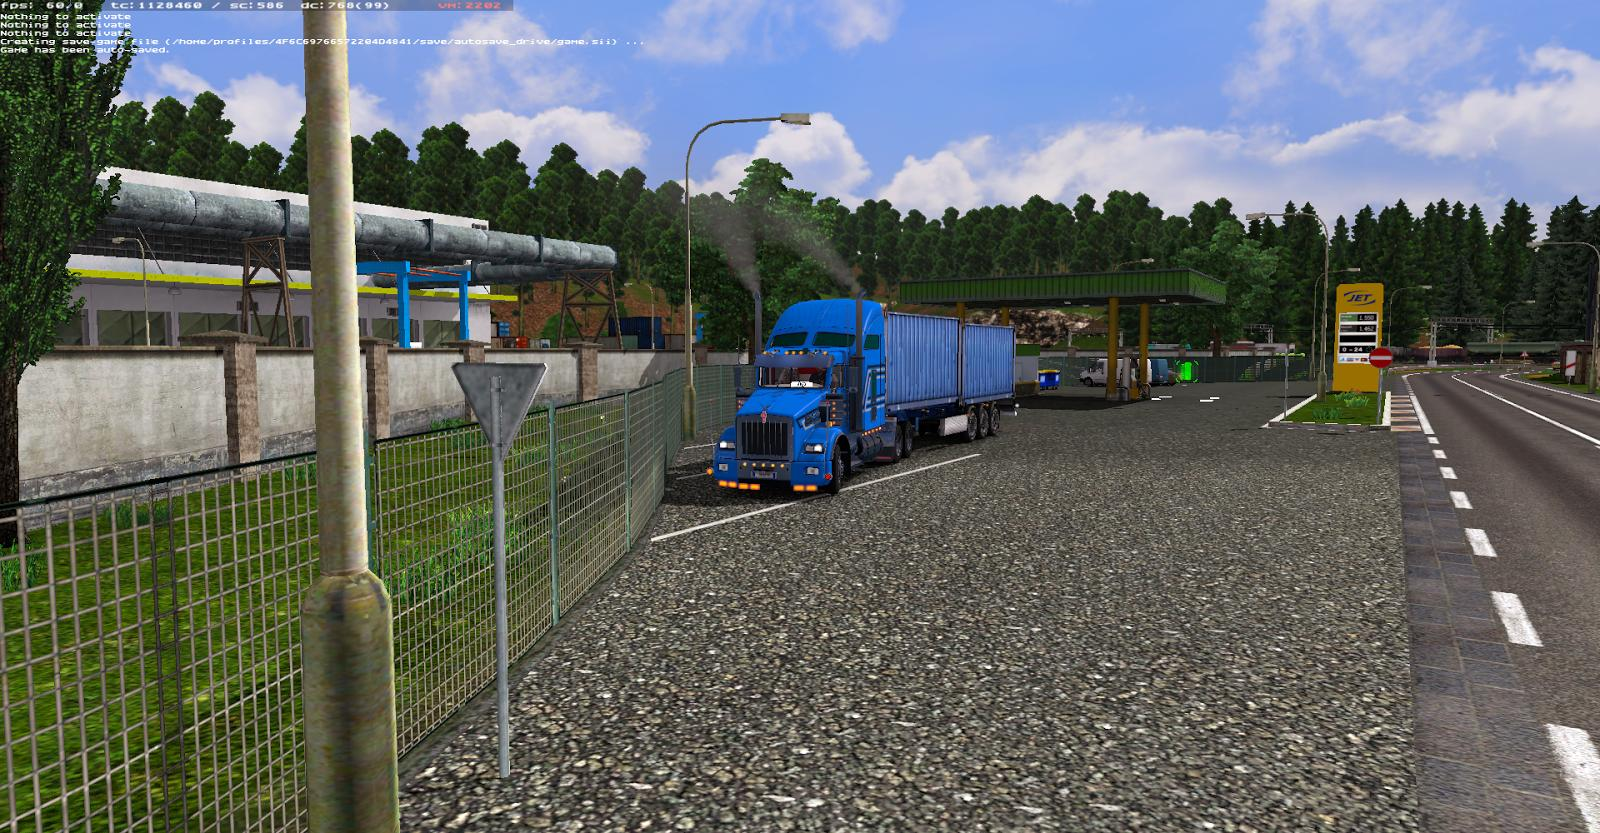 mhapro map eu 1 7 1 for ets2 v1 16 x by heavy alex 1